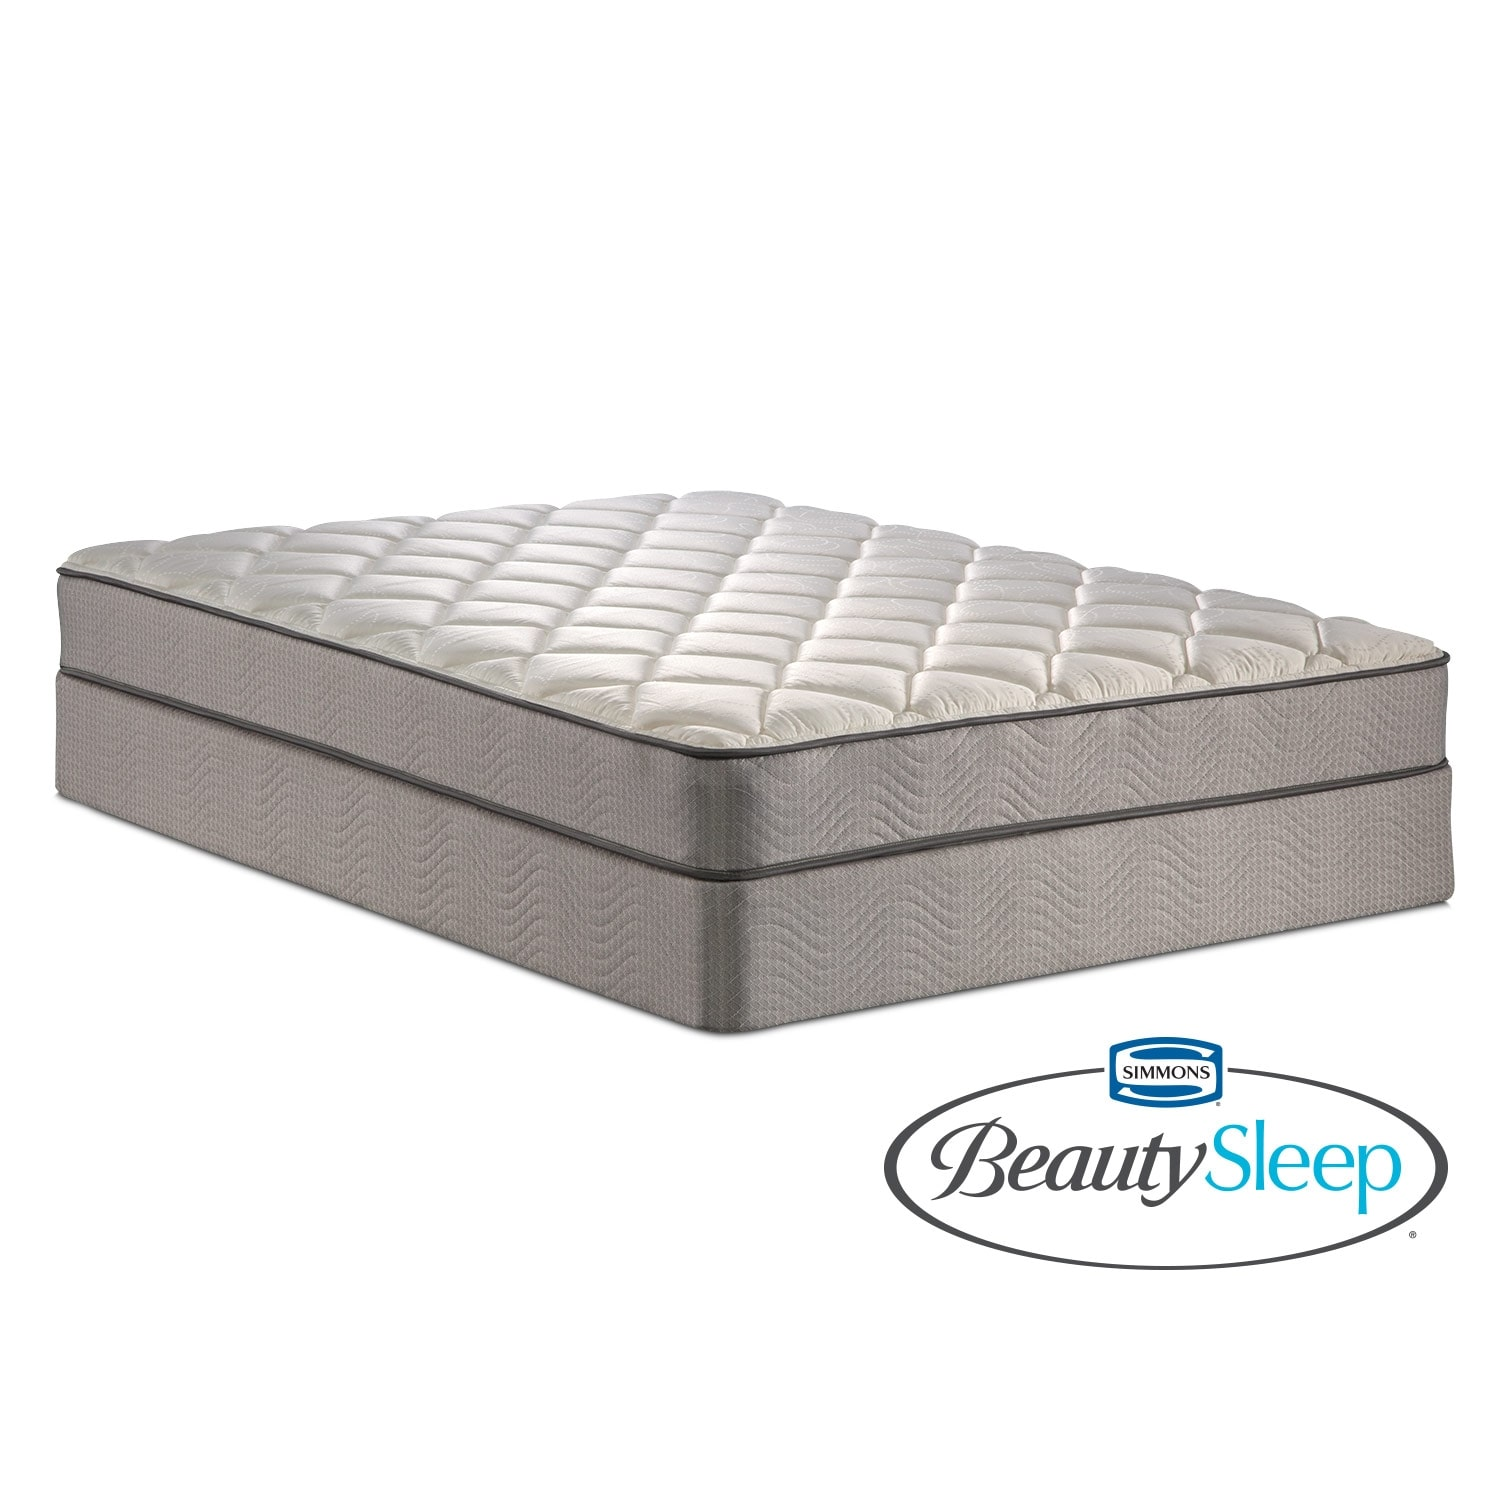 Gates Way Twin Mattress/Foundation Set